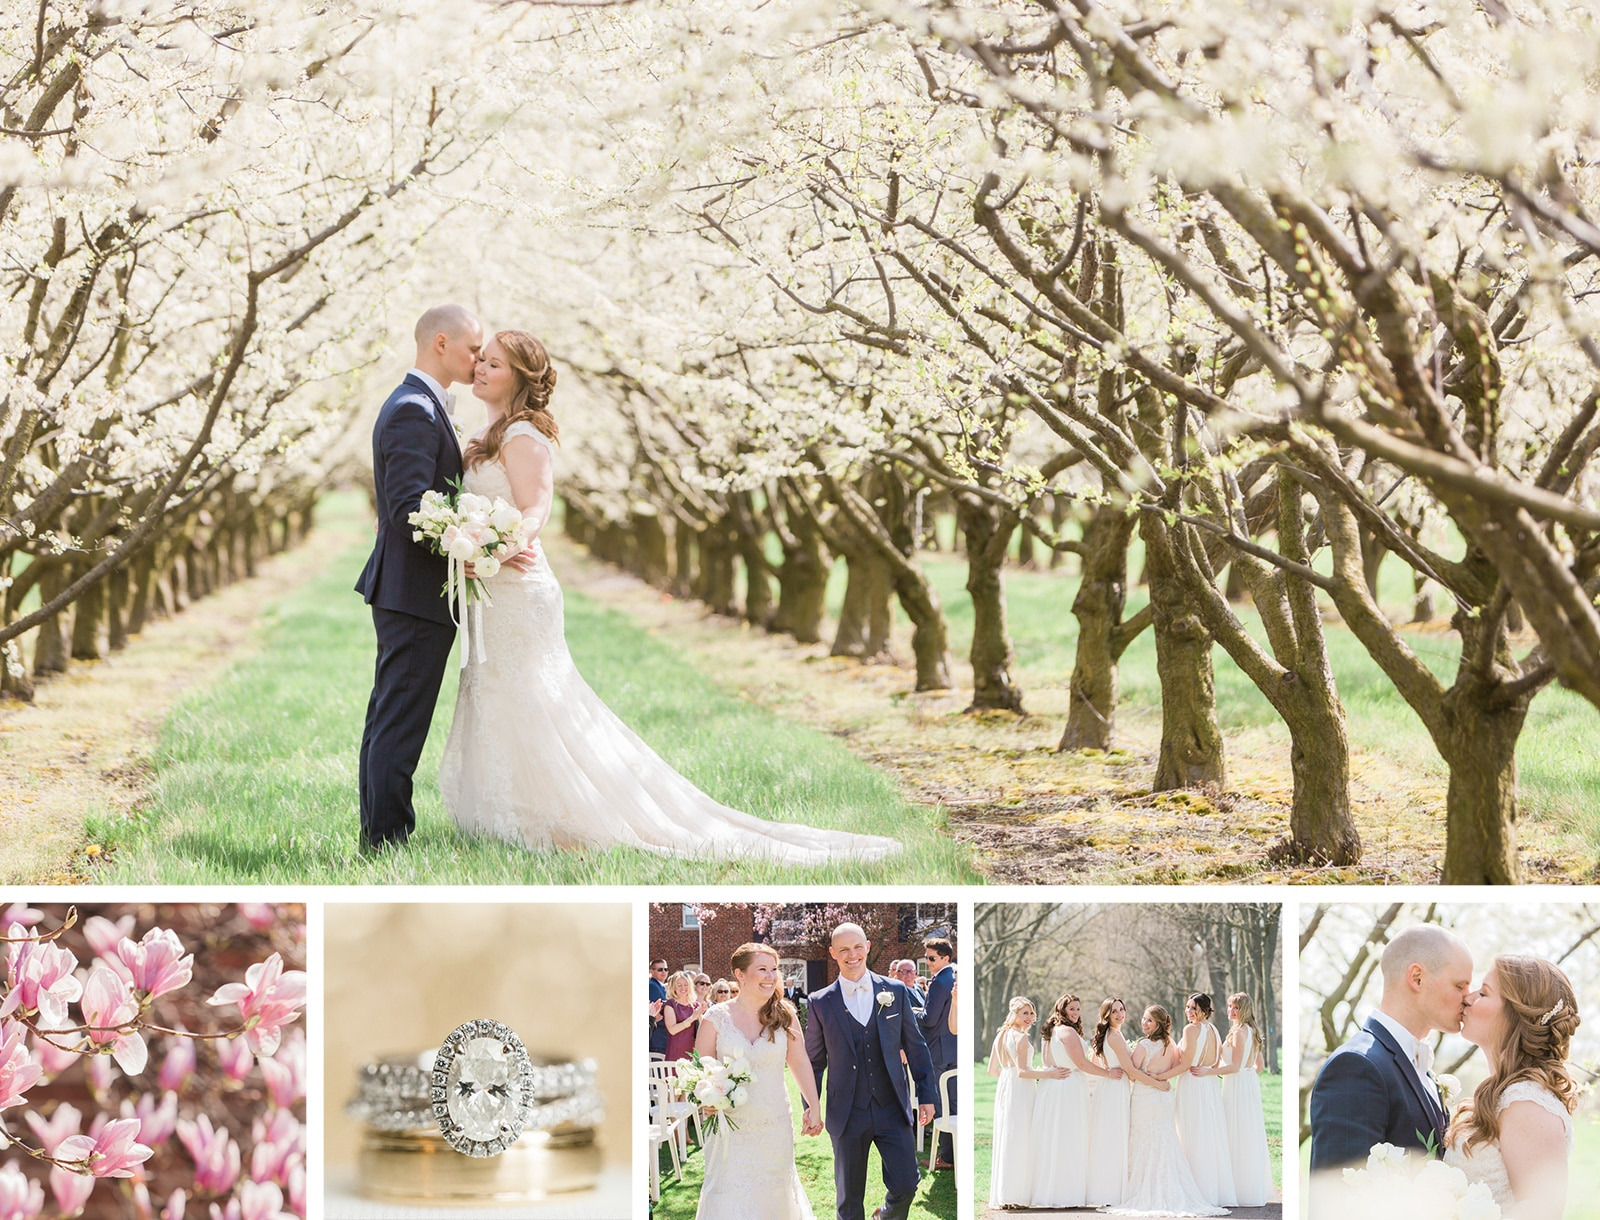 A Magical Spring Blossom Wedding at Pillar & Post: Lauren + Chris